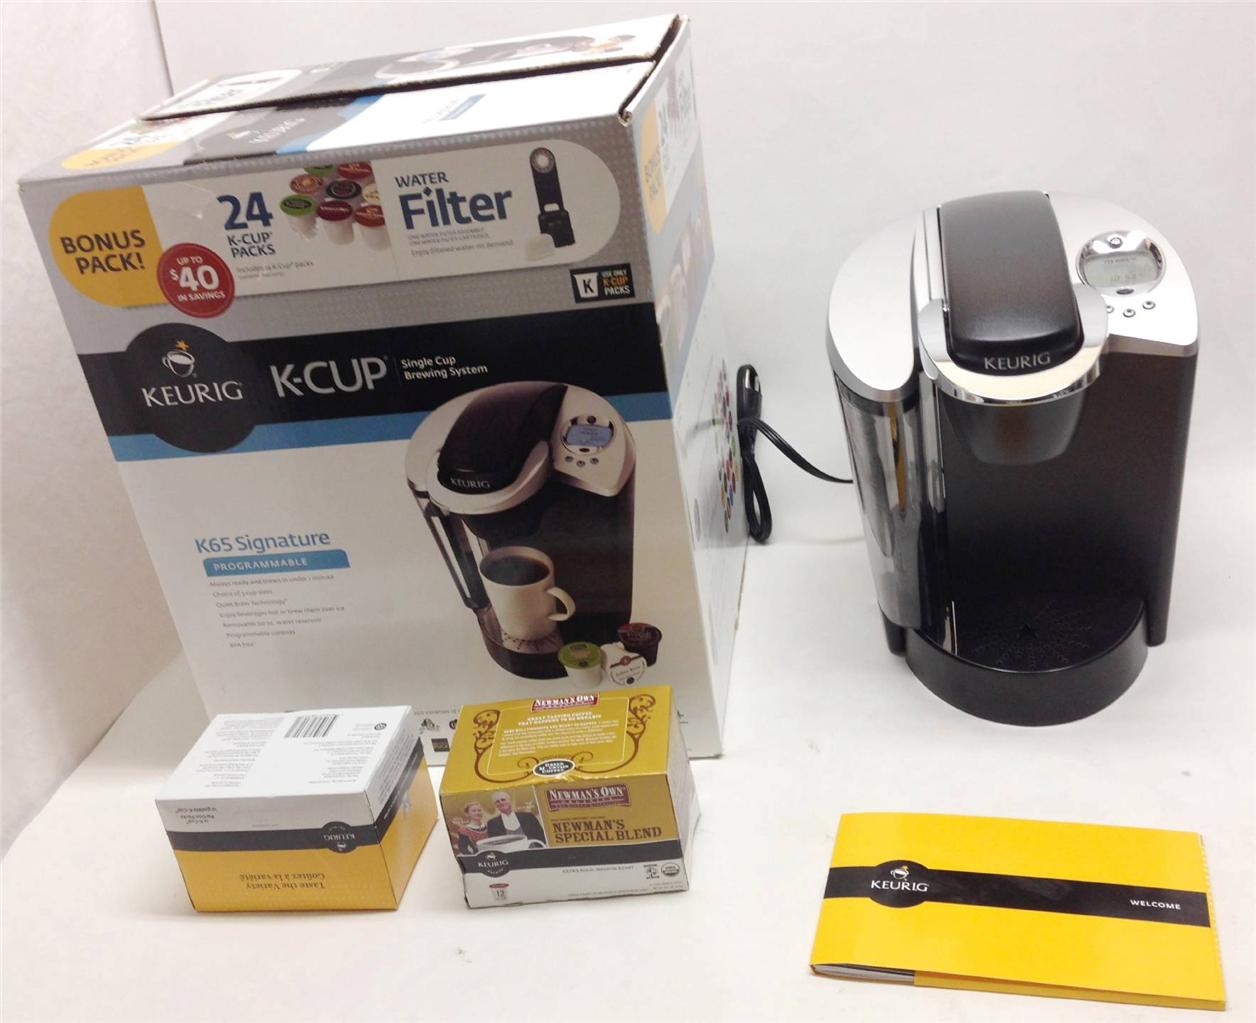 Keurig B60 Single Cup Coffee Maker 24 K Cups Water Filter eBay